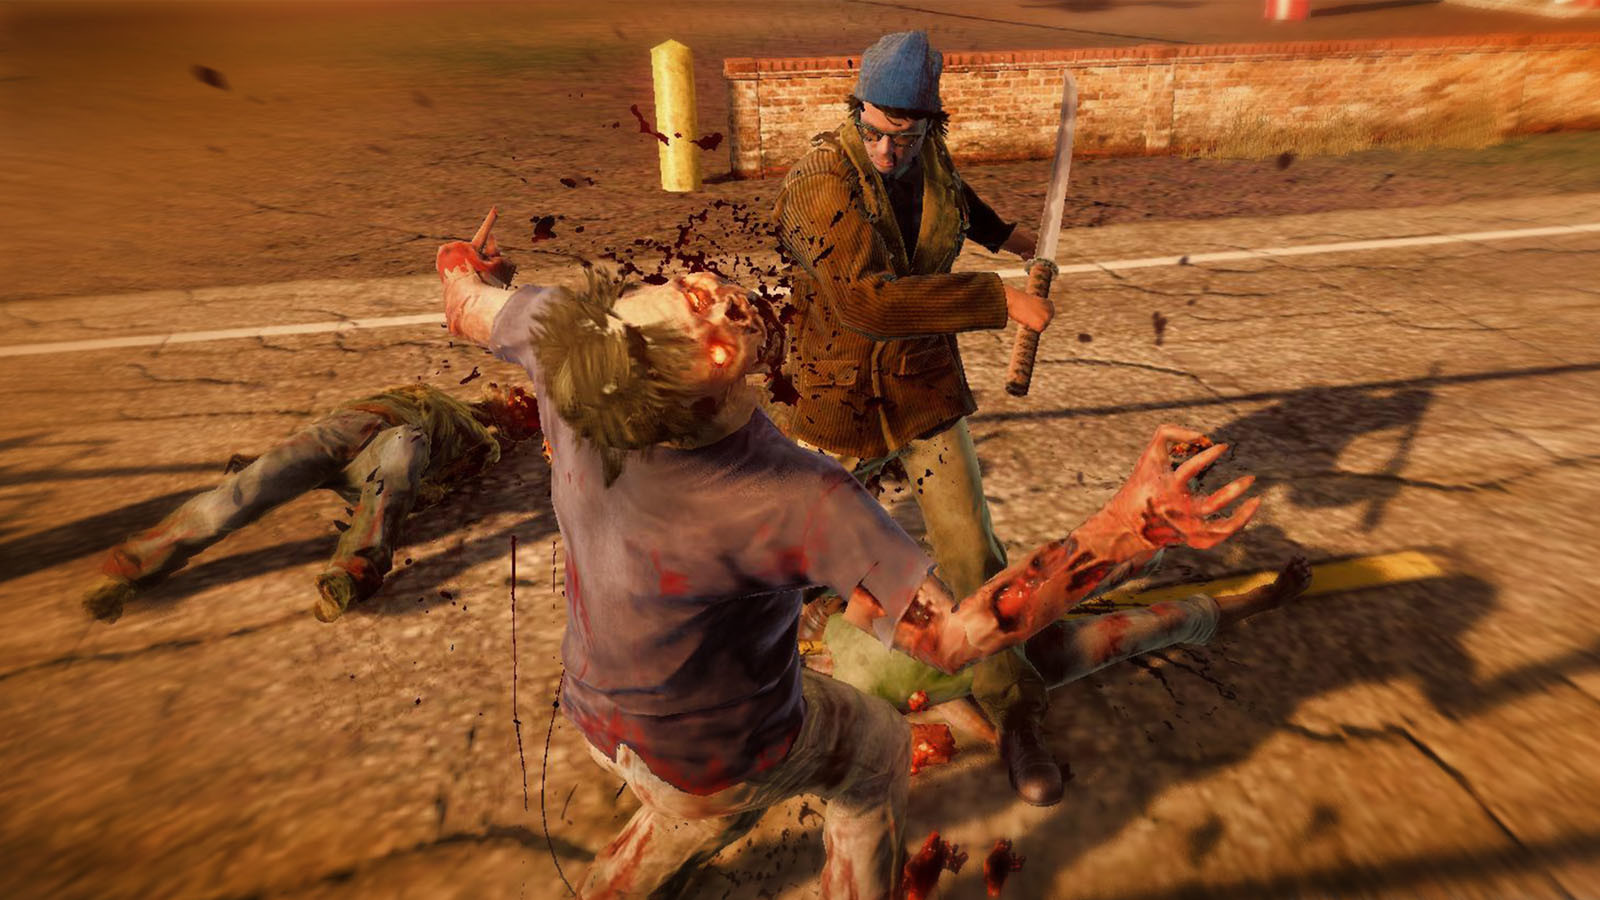 download save game state of decay breakdown pc